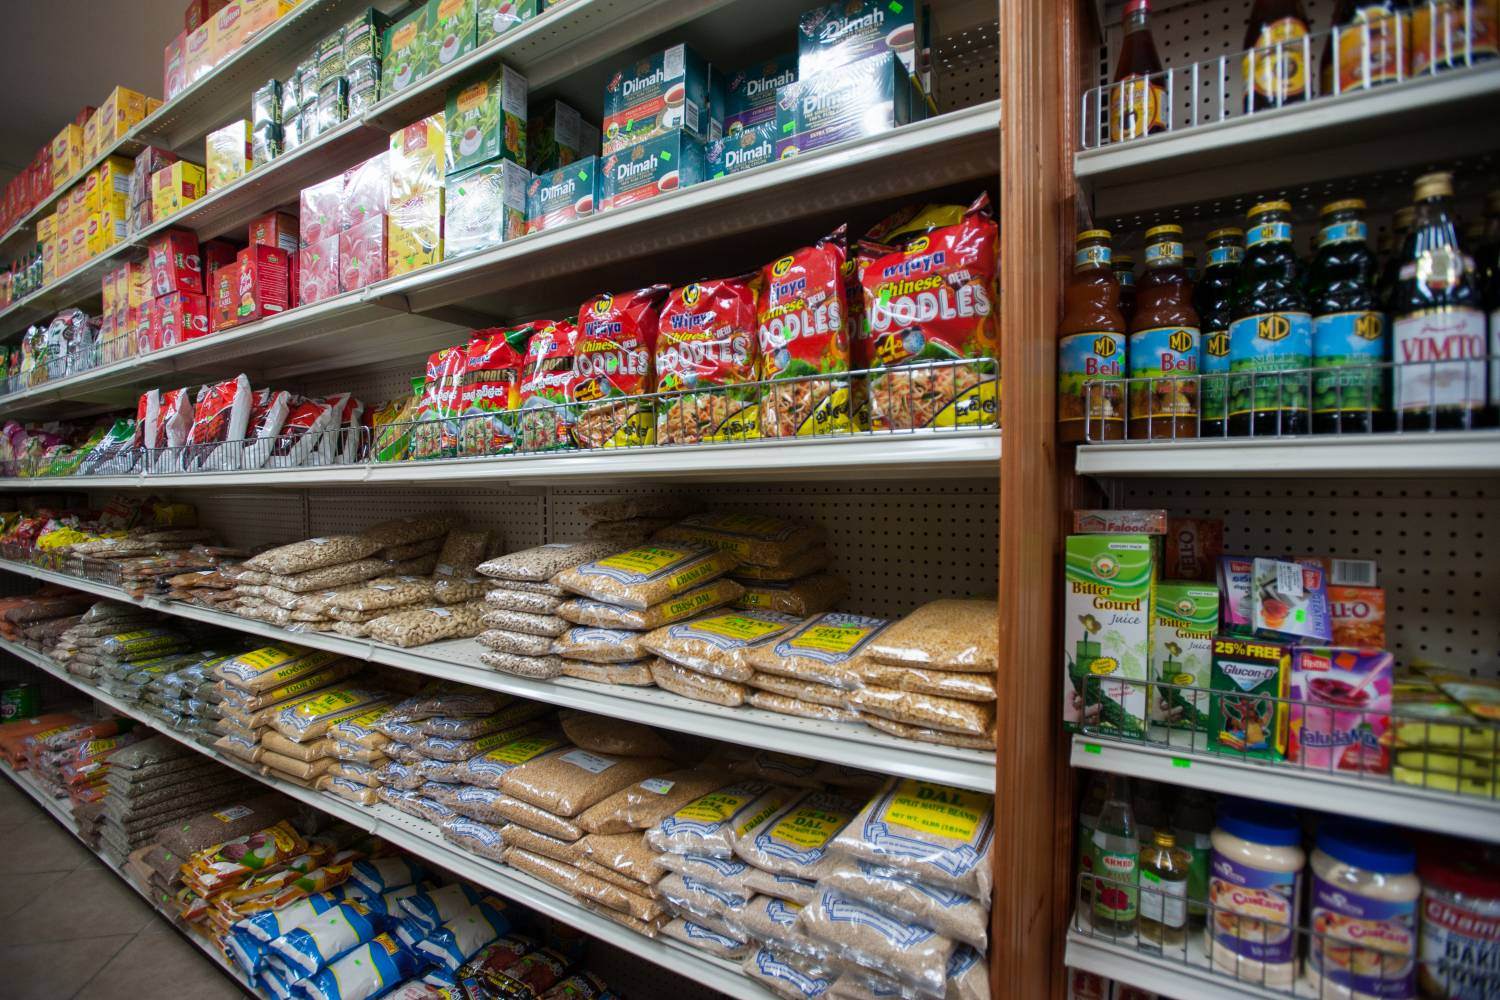 Lanka Grocery, shelves